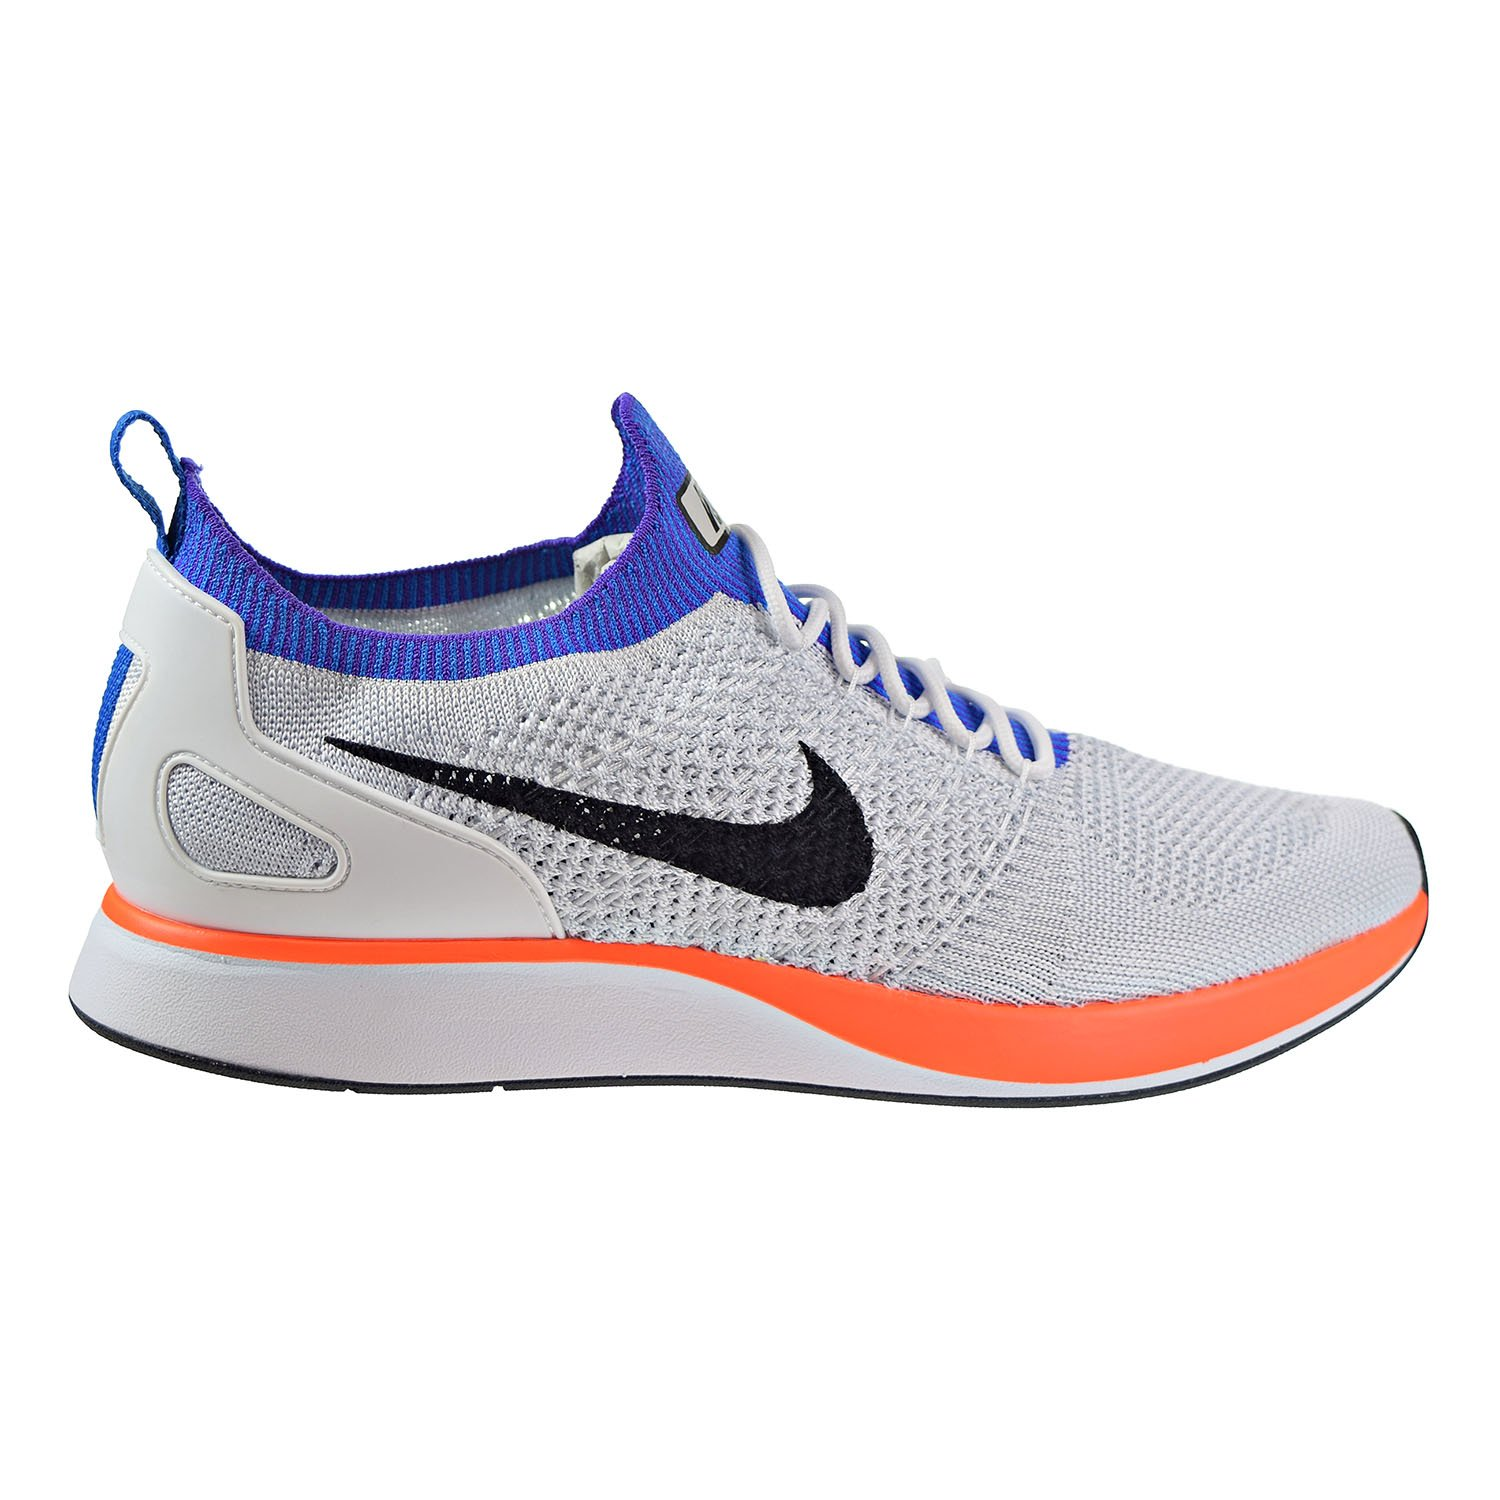 Nike Women's Free Rn Flyknit 2017 Running Shoes B0041C22O0 12 D(M) US|White/Hyper Crimson